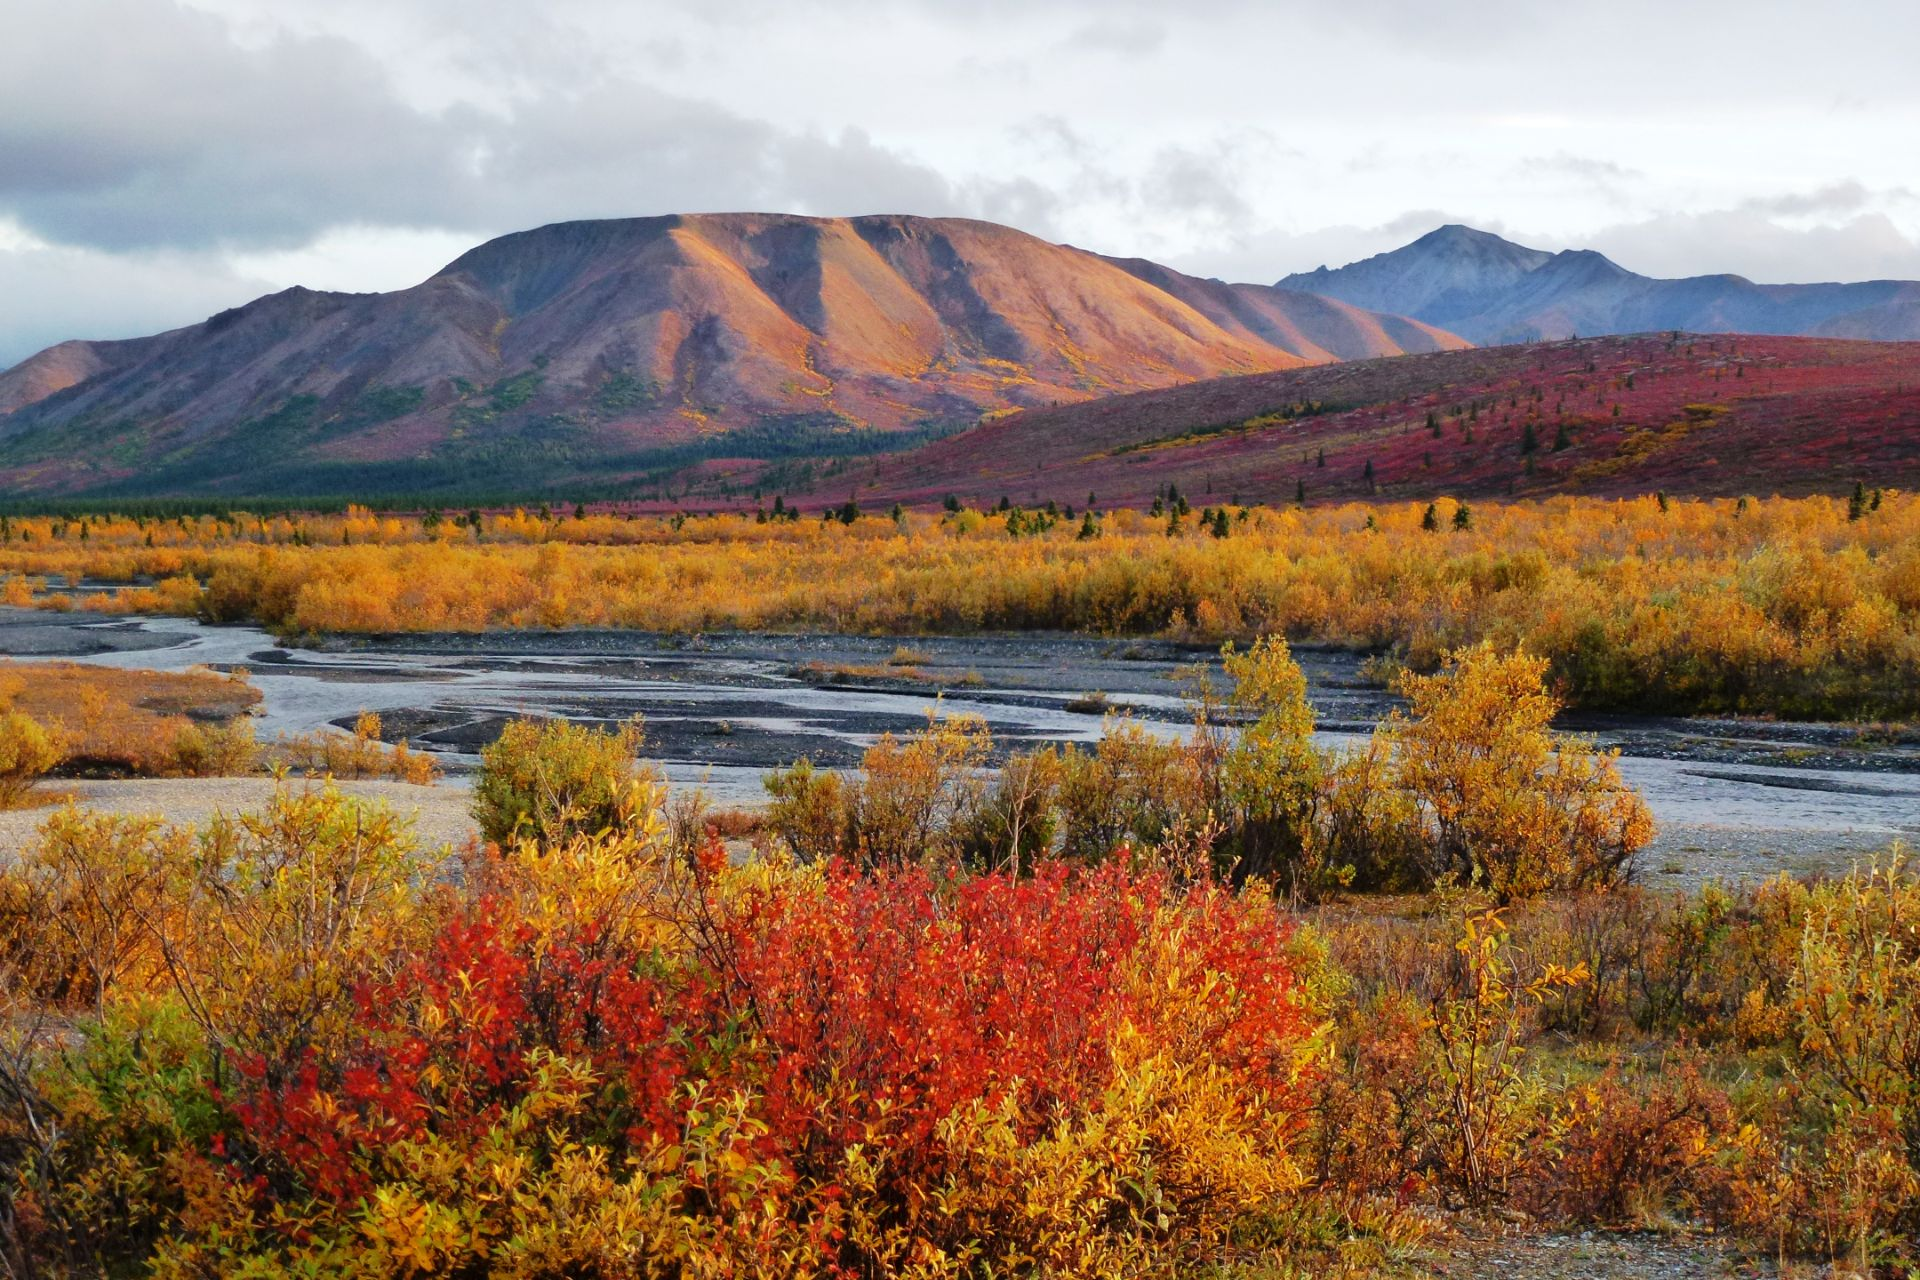 It is almost sunset in fall along the Savage River in Denali National Park. There are red and yellow bushes next to the river and distant mountains